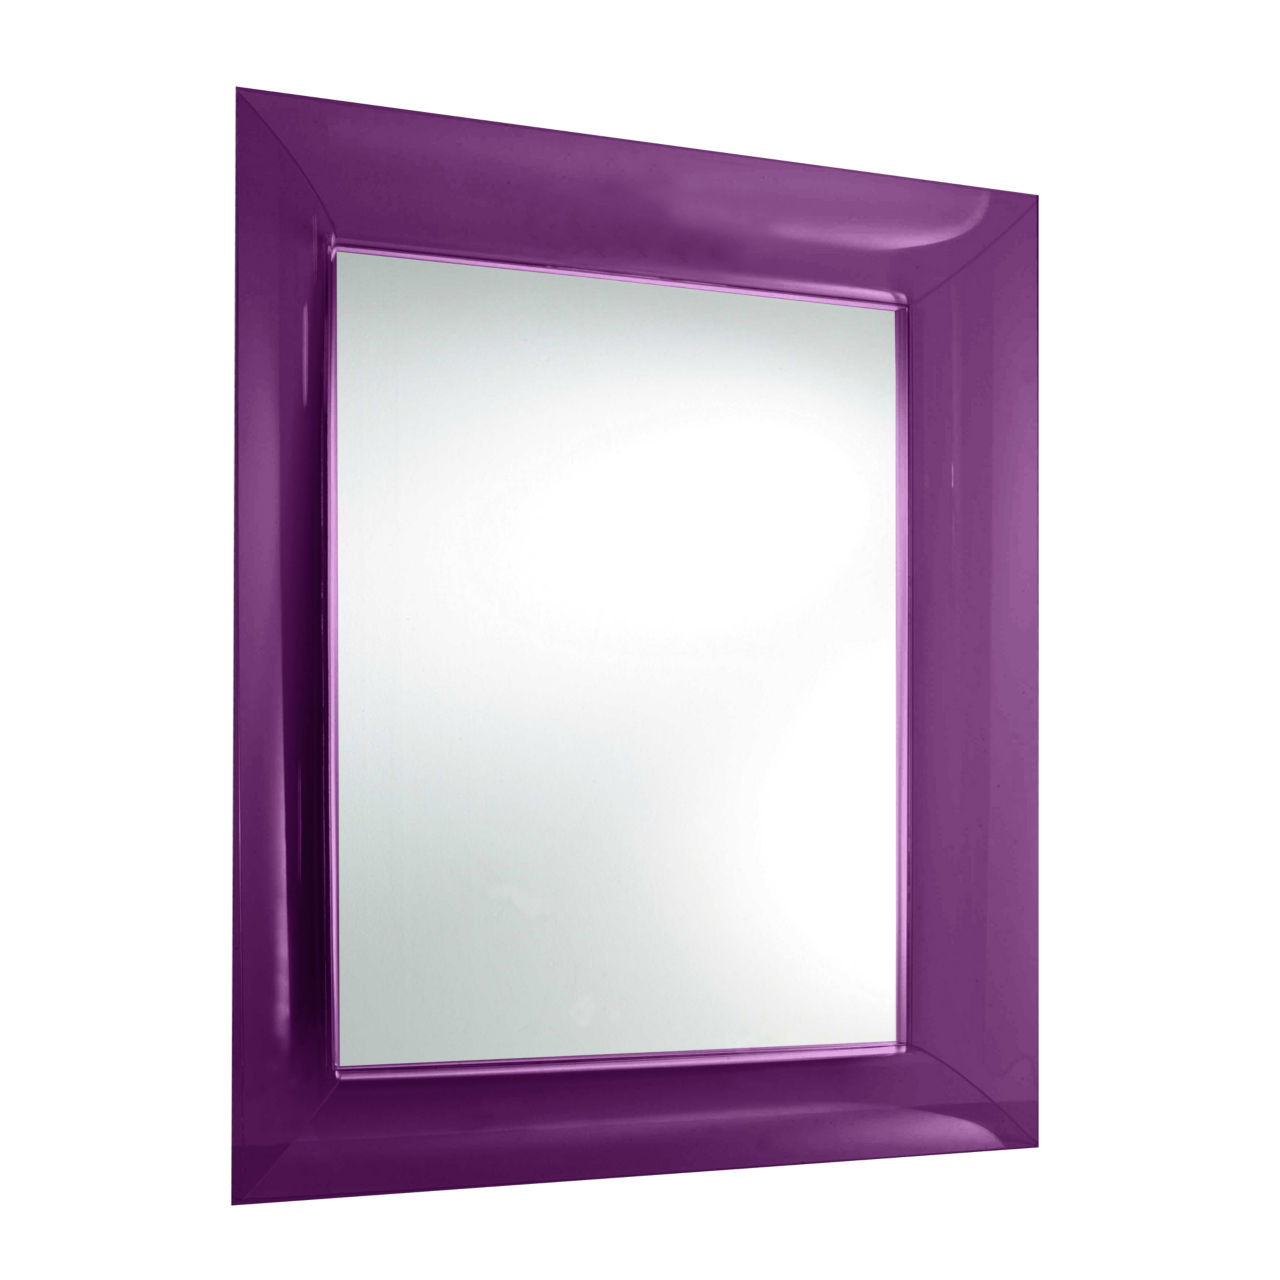 Francois Ghost Mirror in Purple Small by Kartell